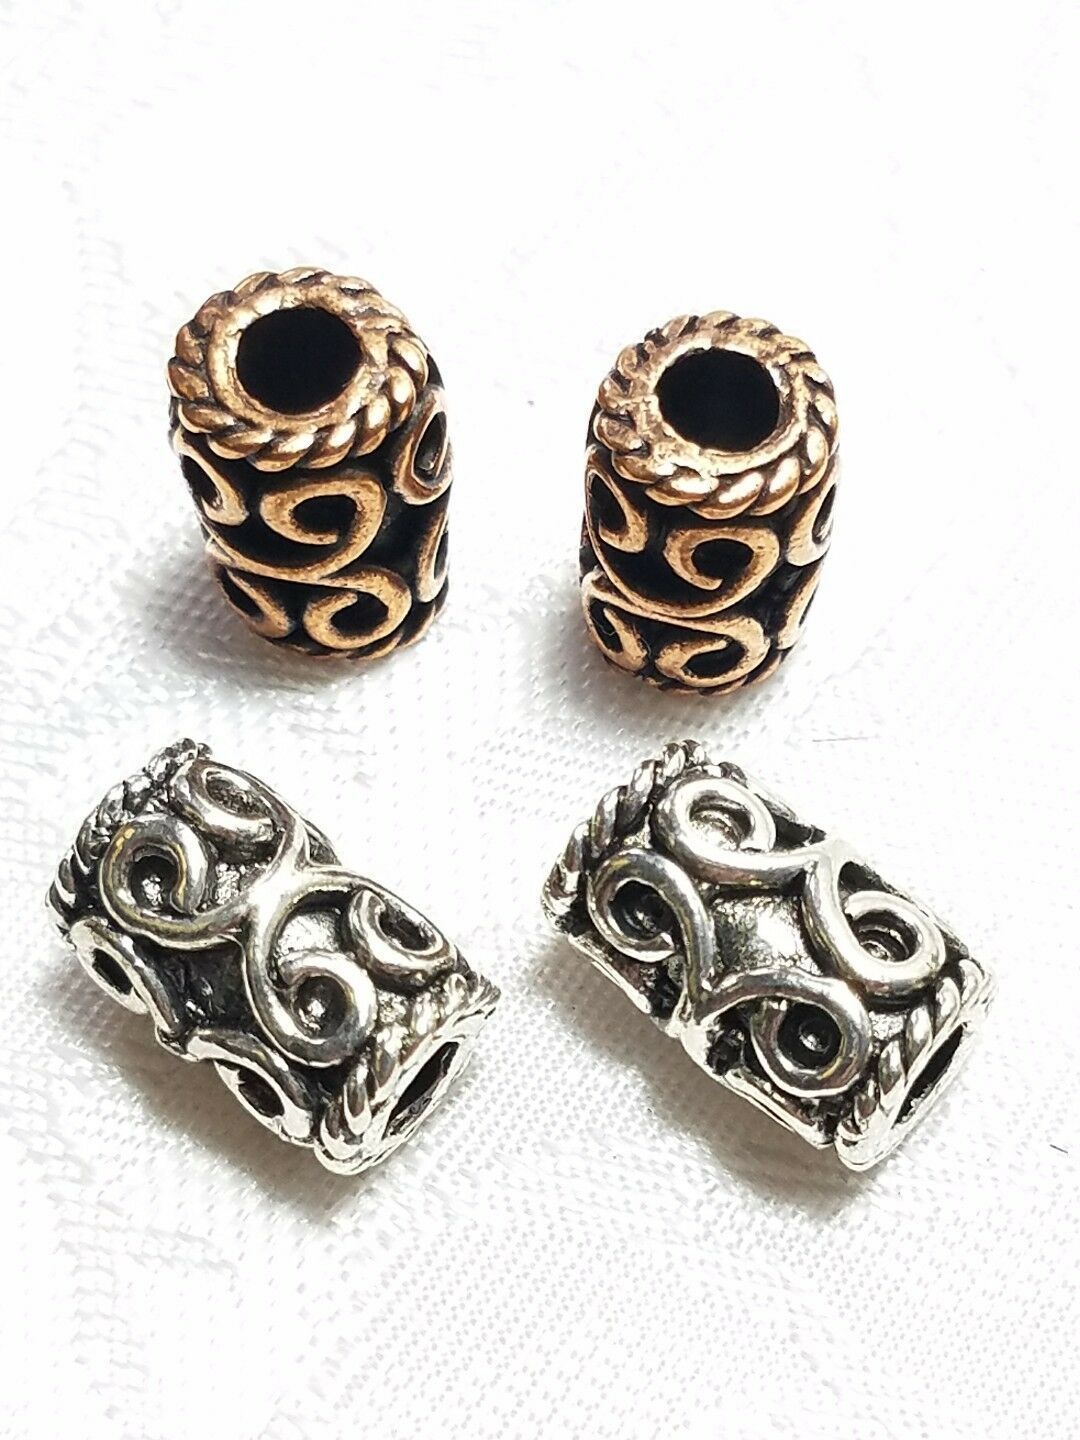 LARGE SCROLL DESIGN TUBE BEAD 3D FINE PEWTER BEAD 13x8x8mm; 4mm Hole